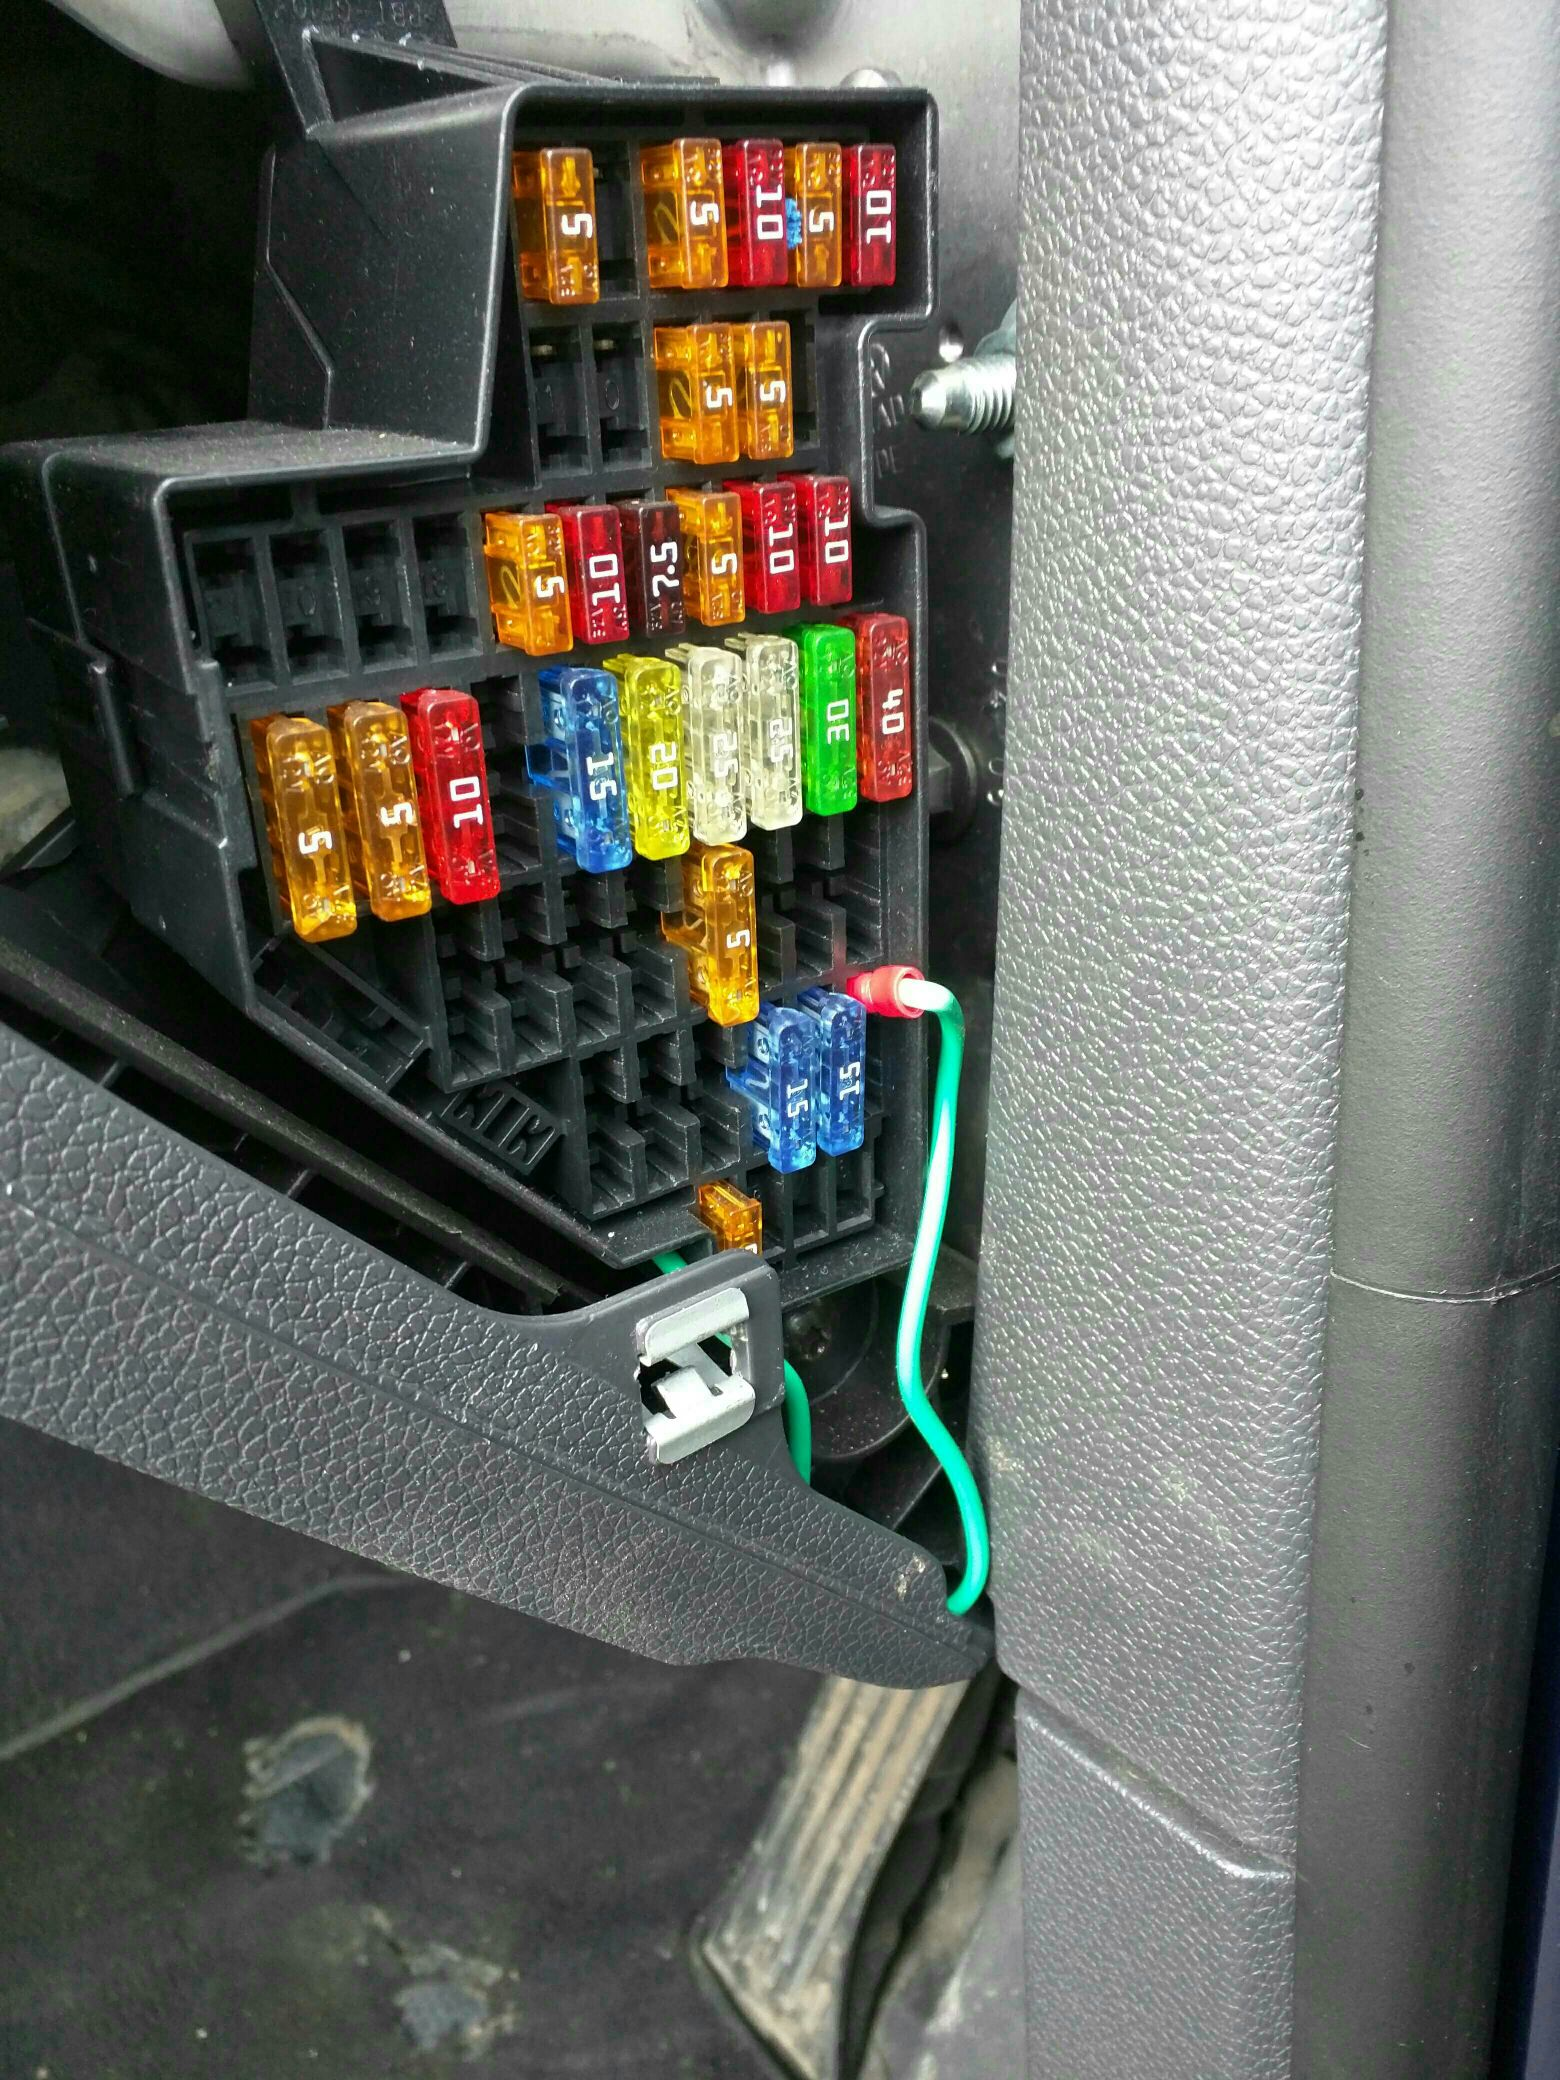 09af3f607ff86a87ef467830b99fa54f aftermarket hu which fakra cable should i buy? mk5 general mk5 golf fuse box diagram at bayanpartner.co